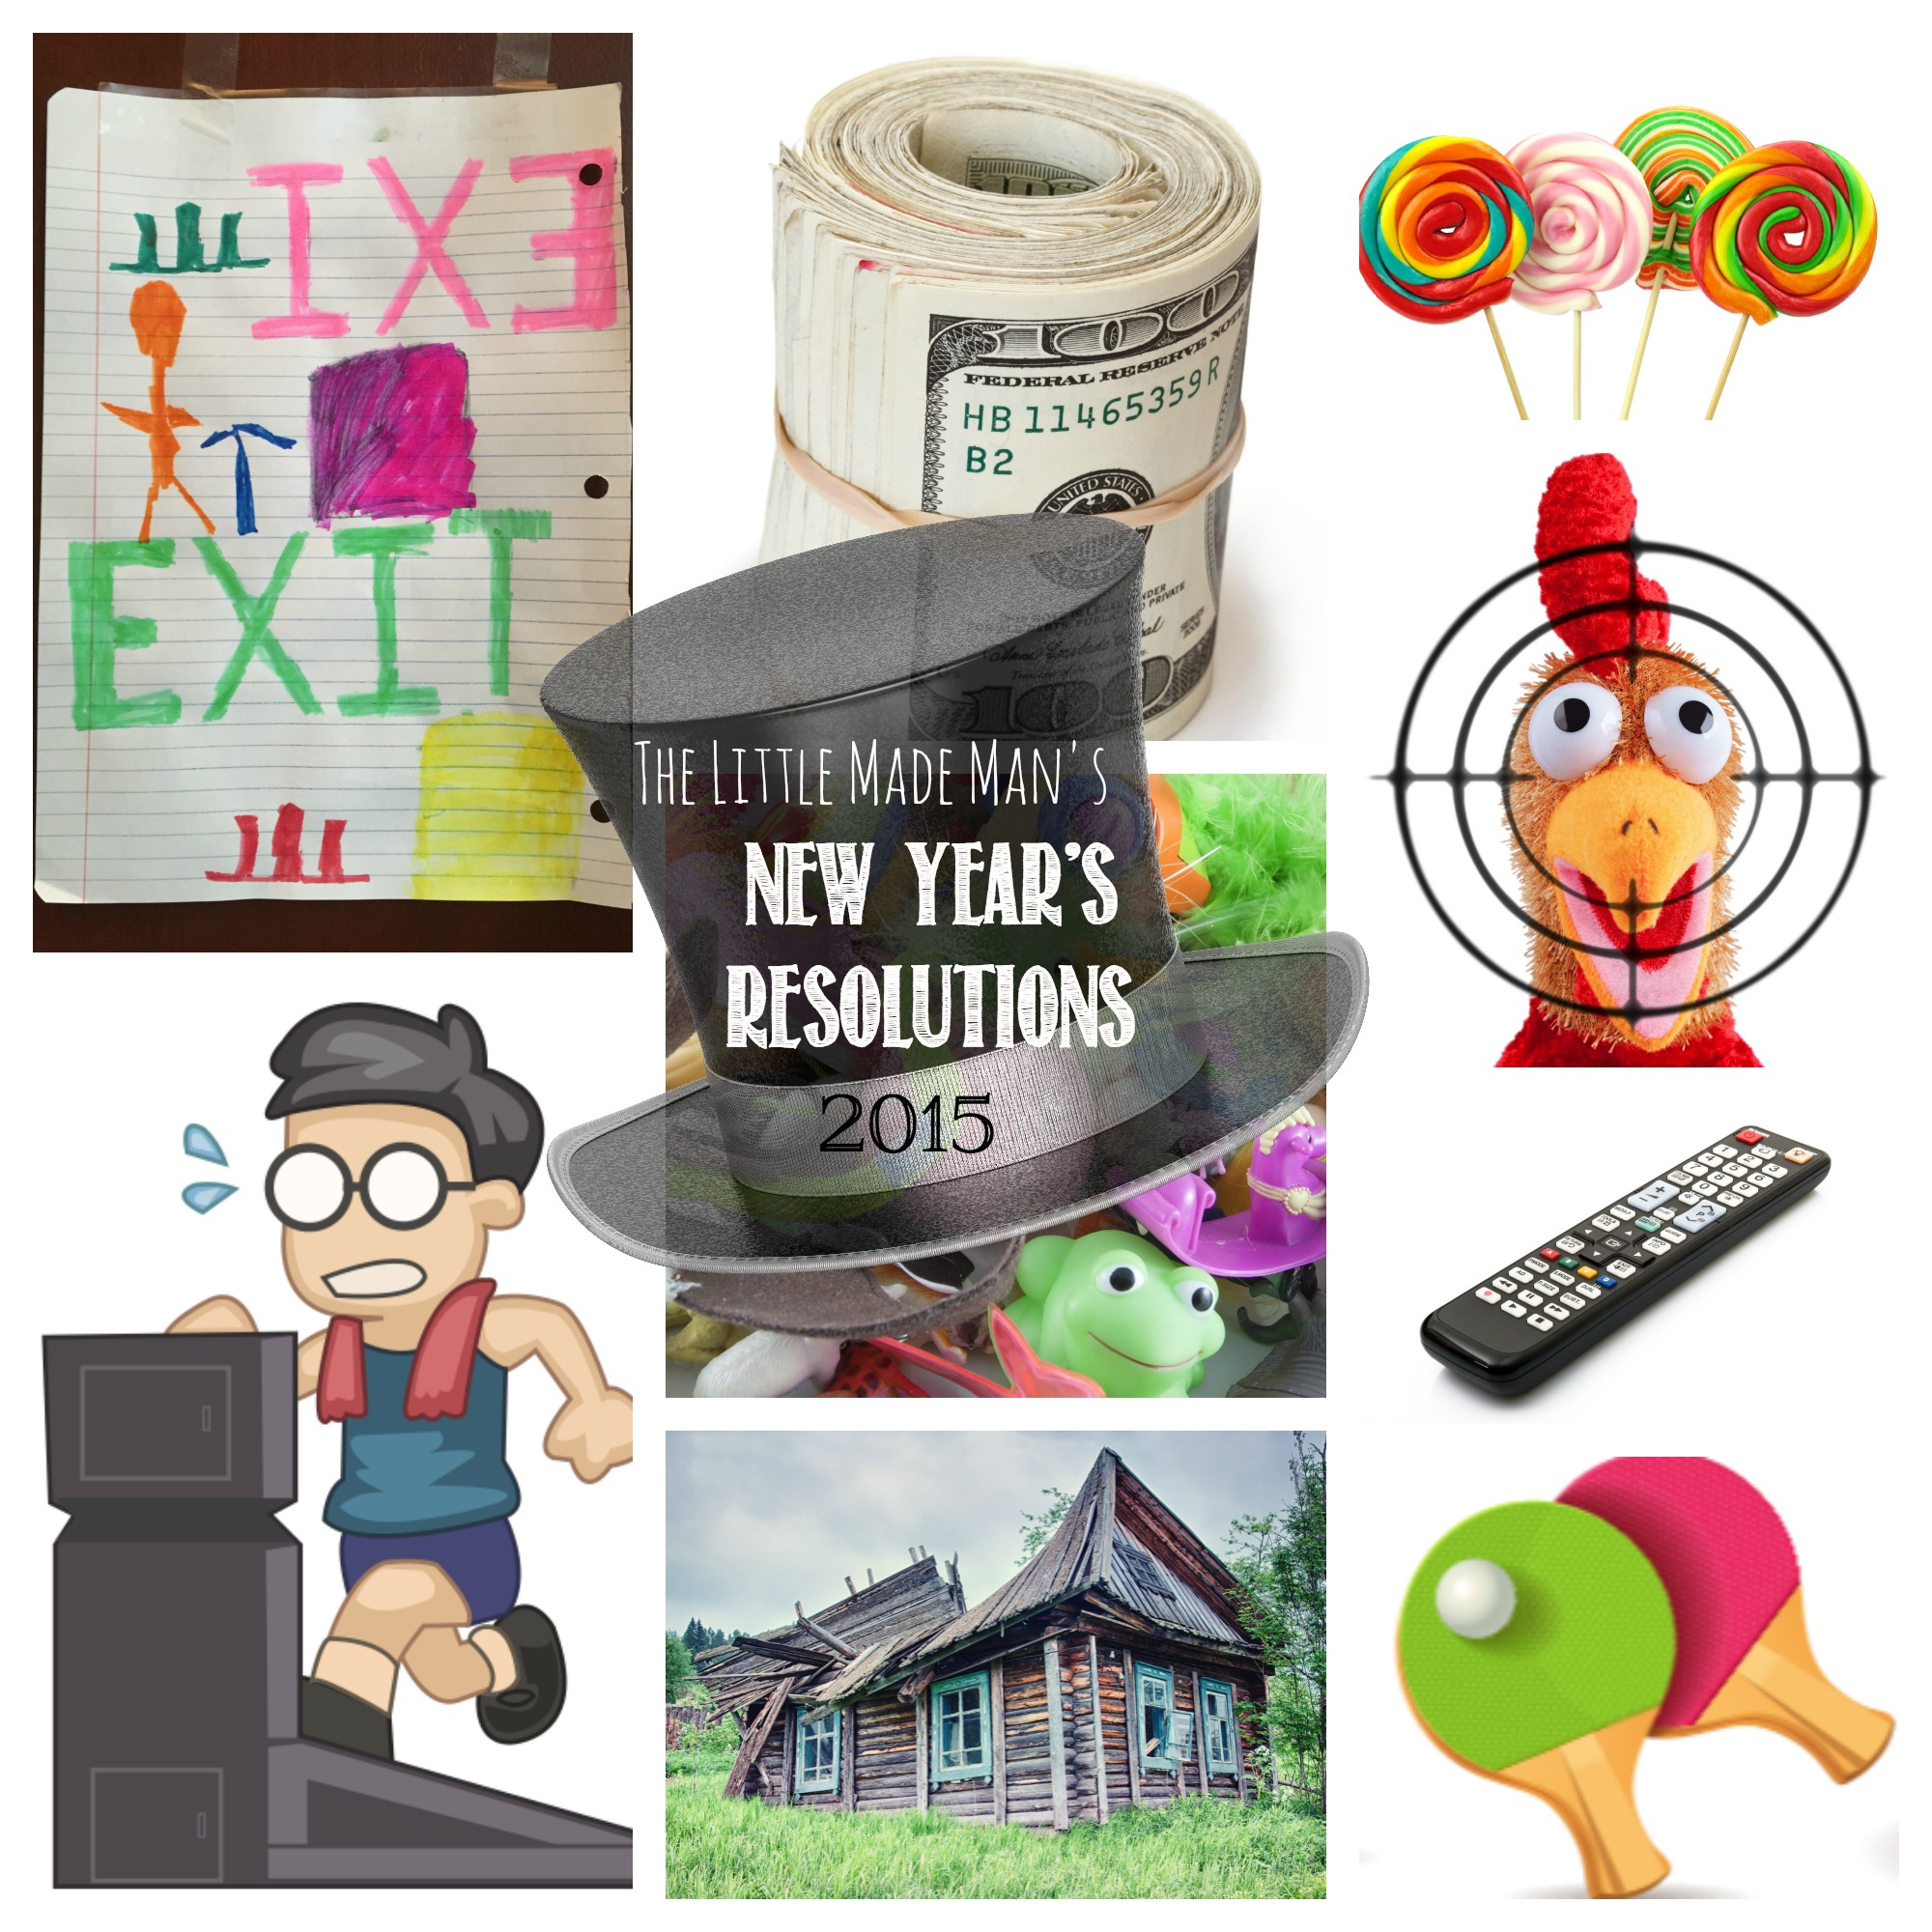 Little Made Man New Years Resolutions 2015 MommyMafia.com